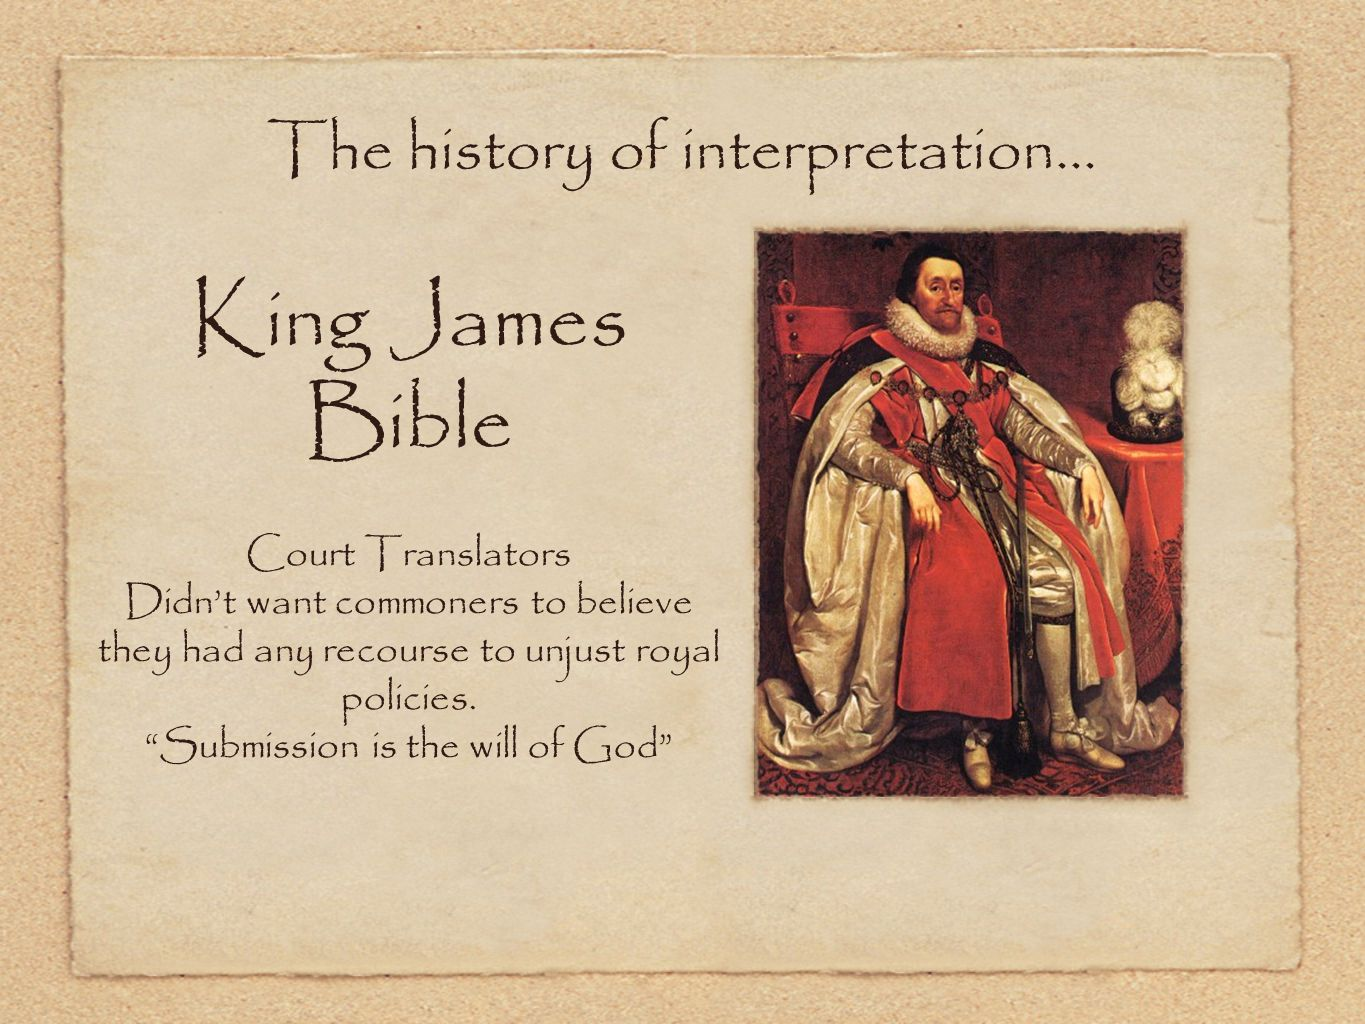 King James Bible Court Translators Didn't want commoners to believe they had any recourse to unjust royal policies.